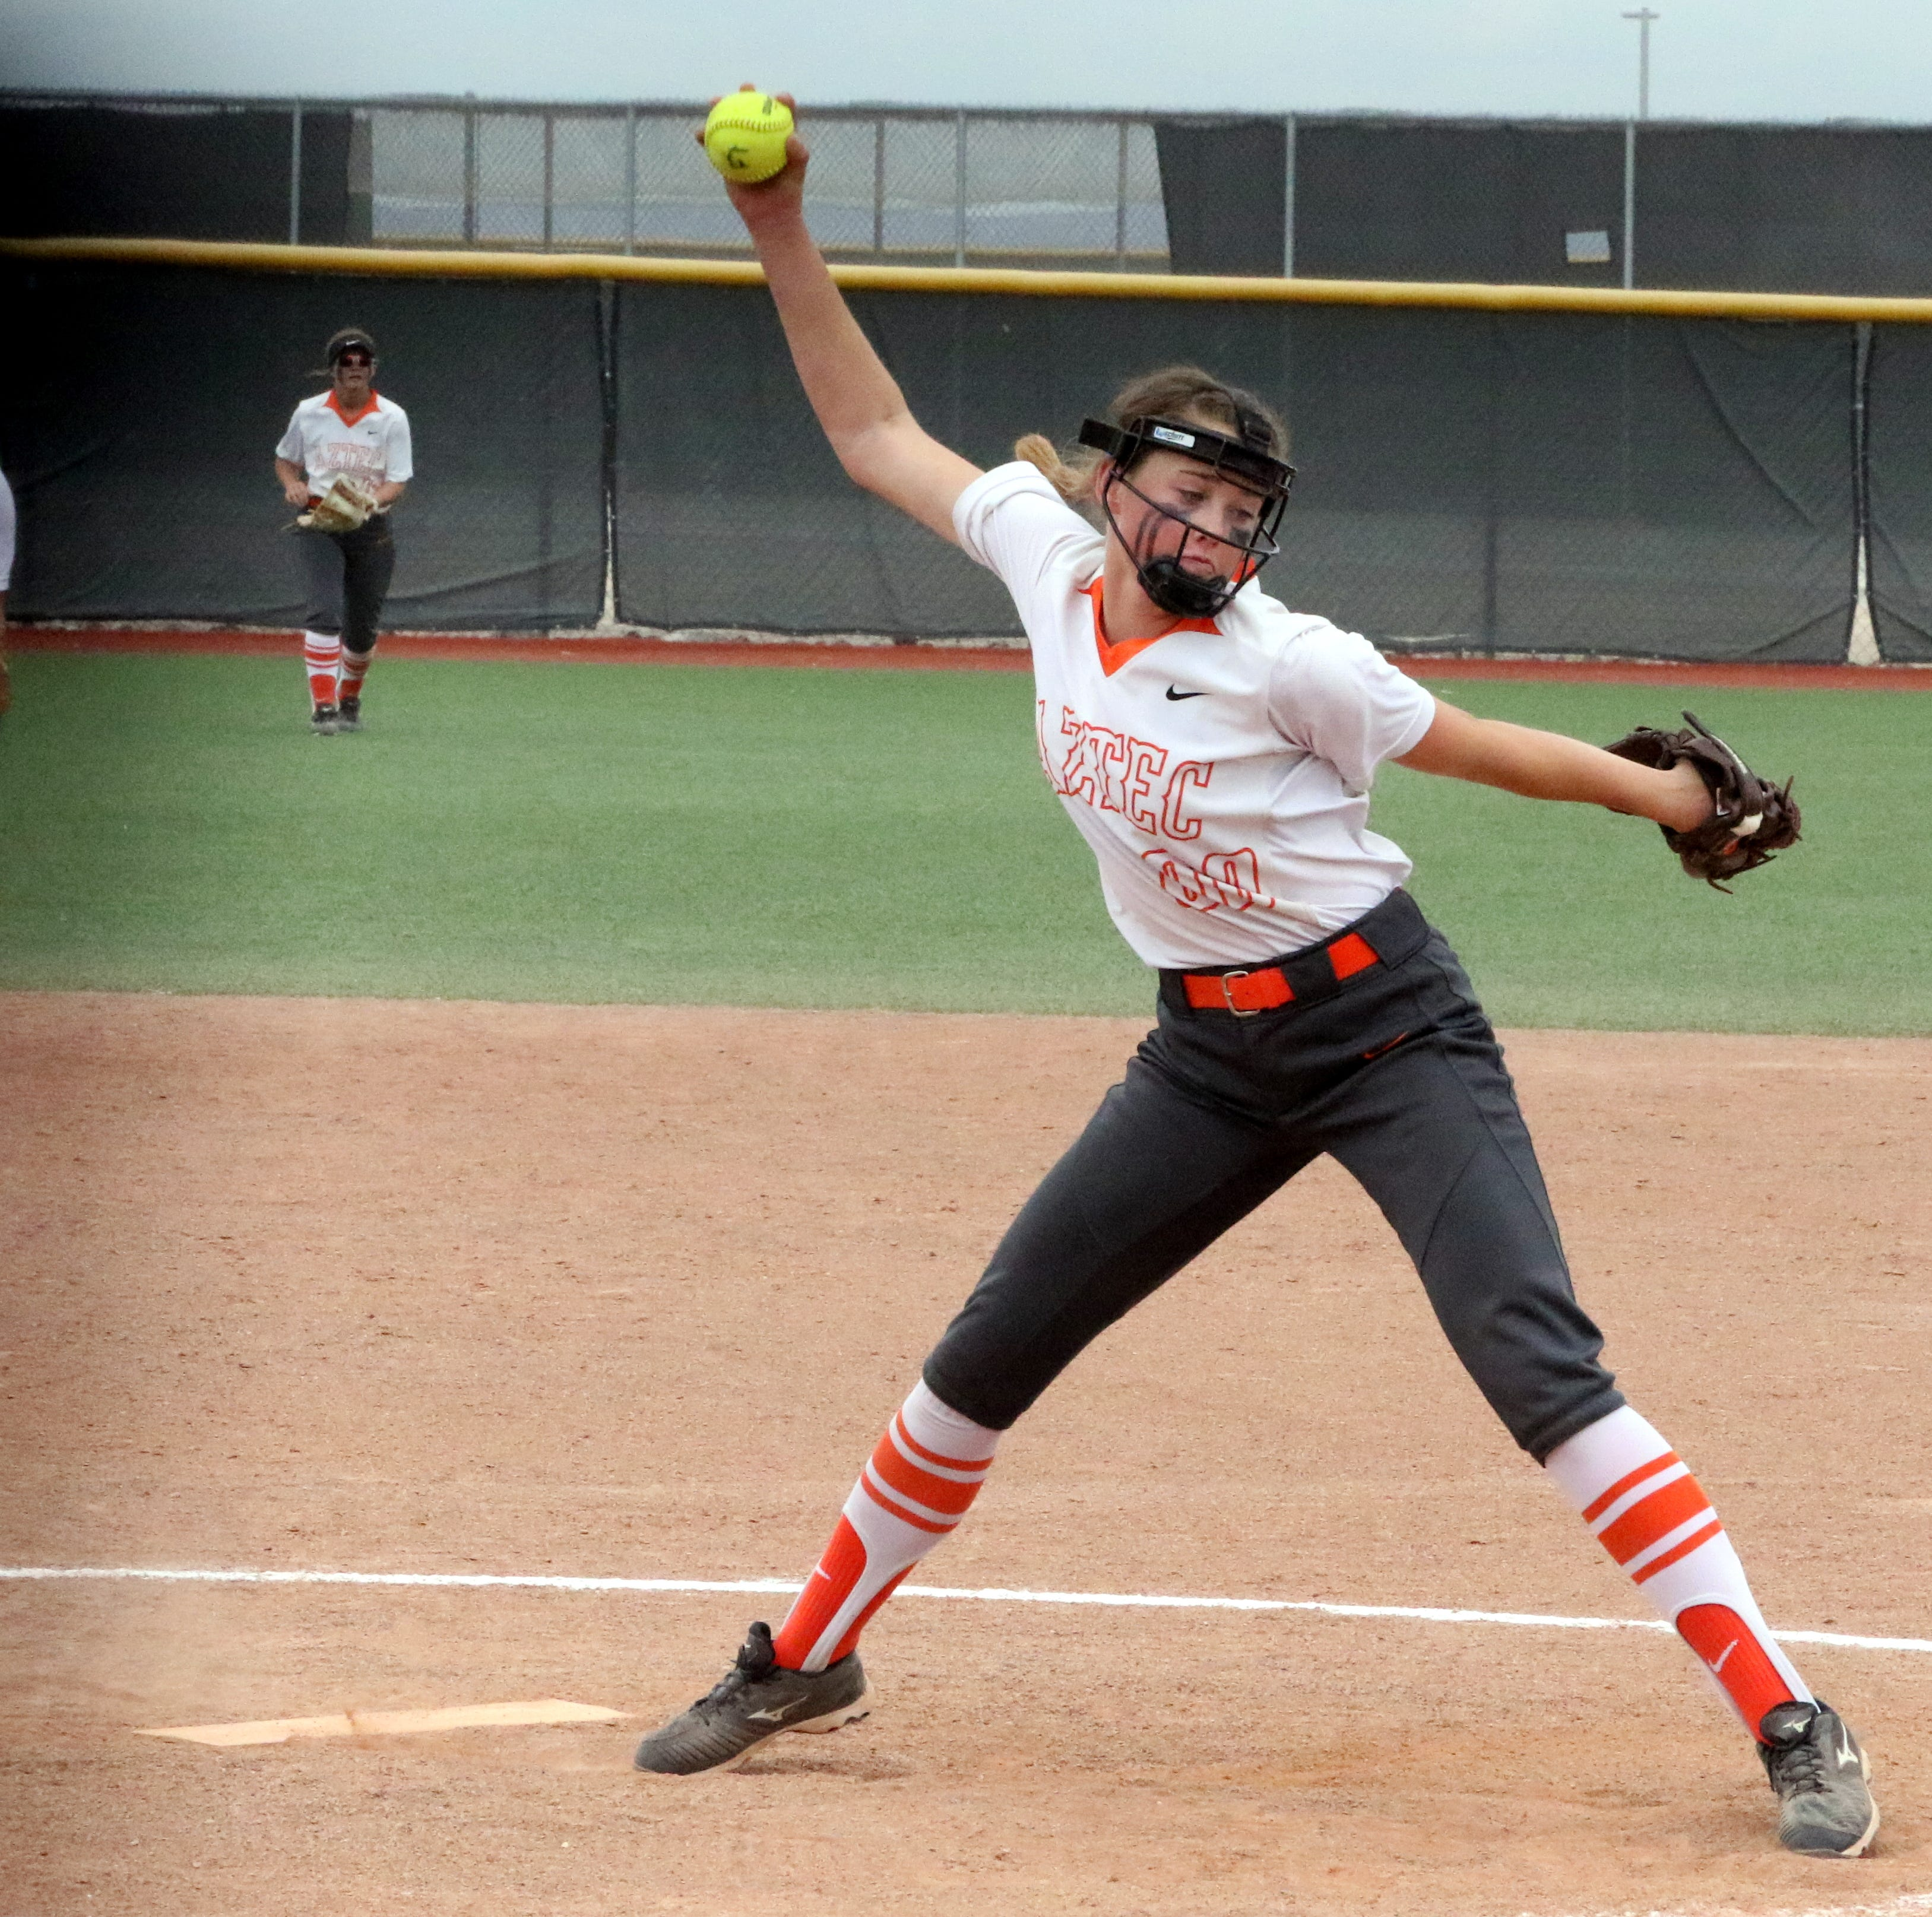 Larkins leads Lady Tigers to extra-inning win over Los Lunas